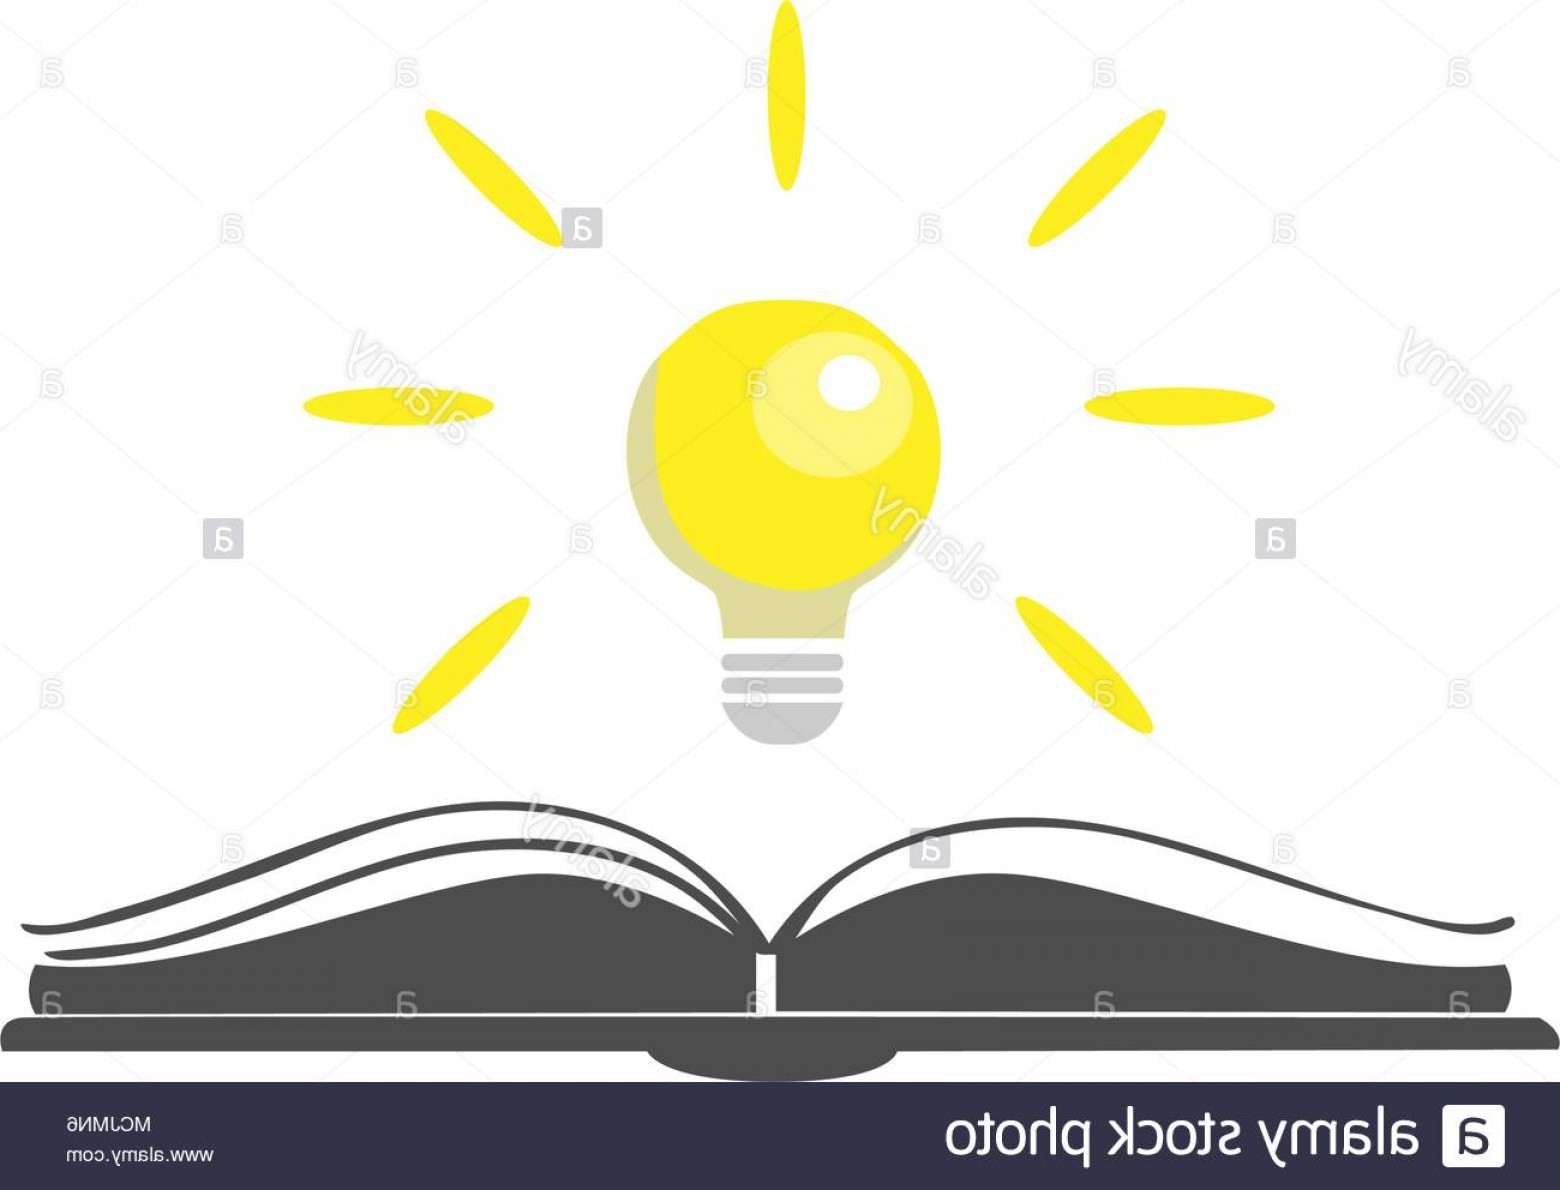 Open Book Vector Flat: Open Book Vector Icon With Shining Bulb Over It Colorful Flat Design Open Book Logo Vector Illustration Image